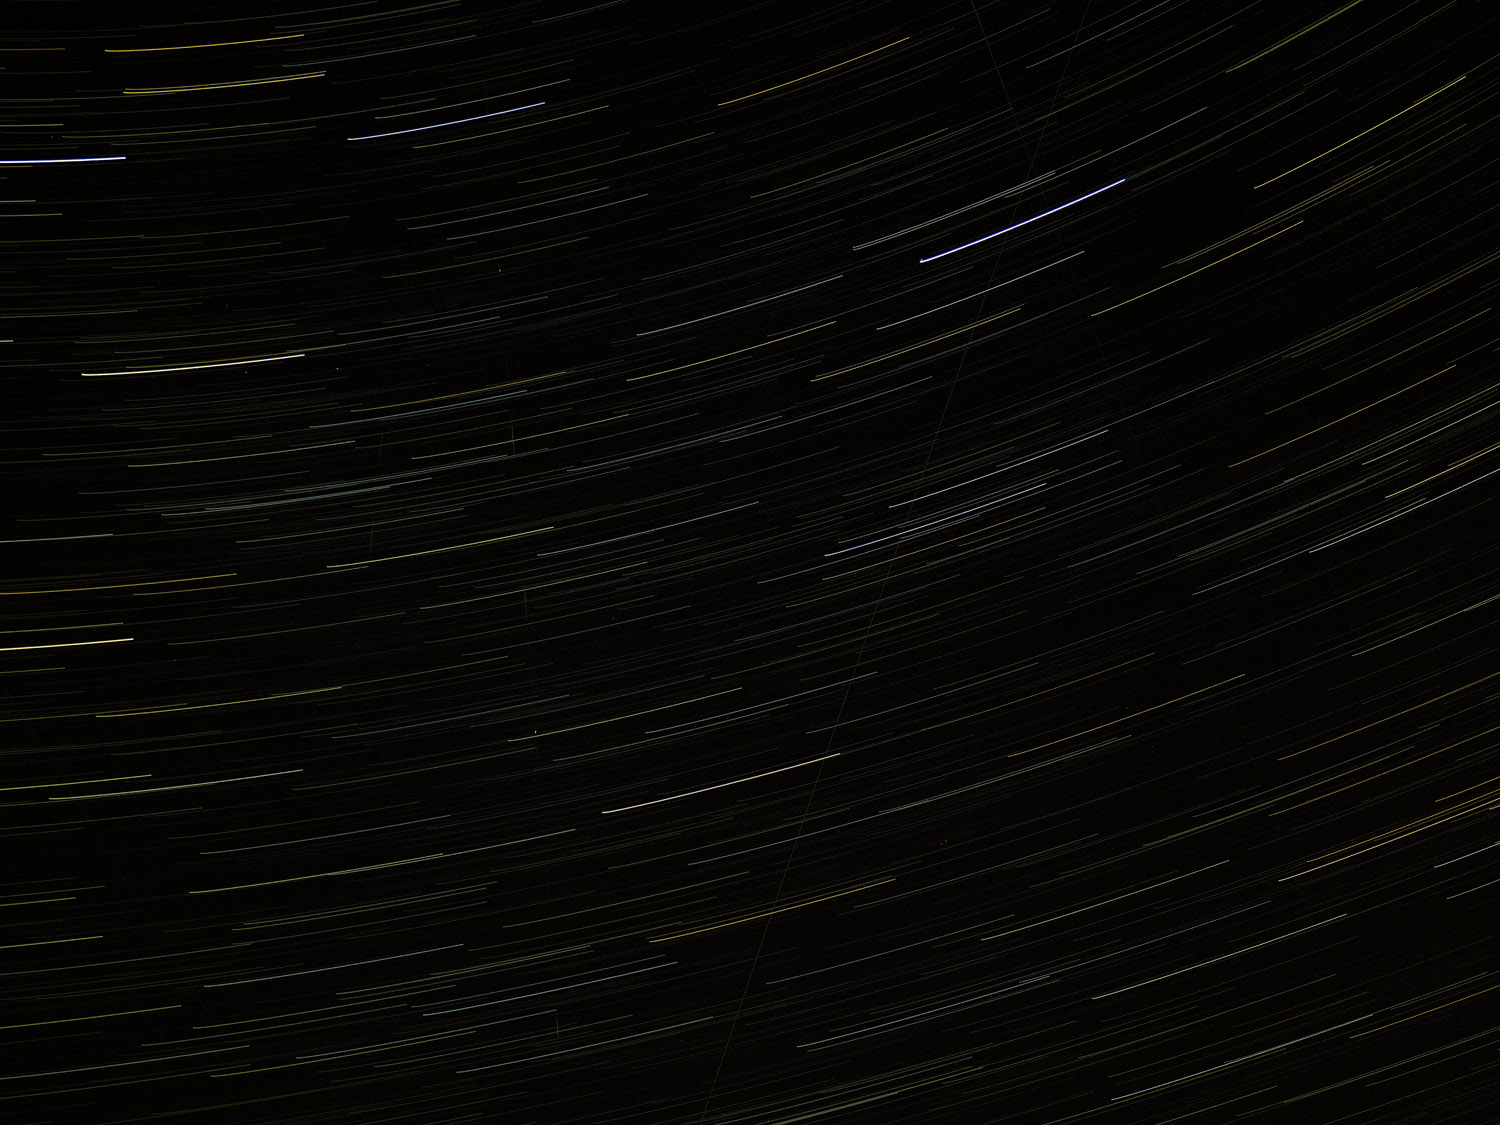 Image: Star trails occur when you take astrophotography shots and leave the shutter open for an exte...